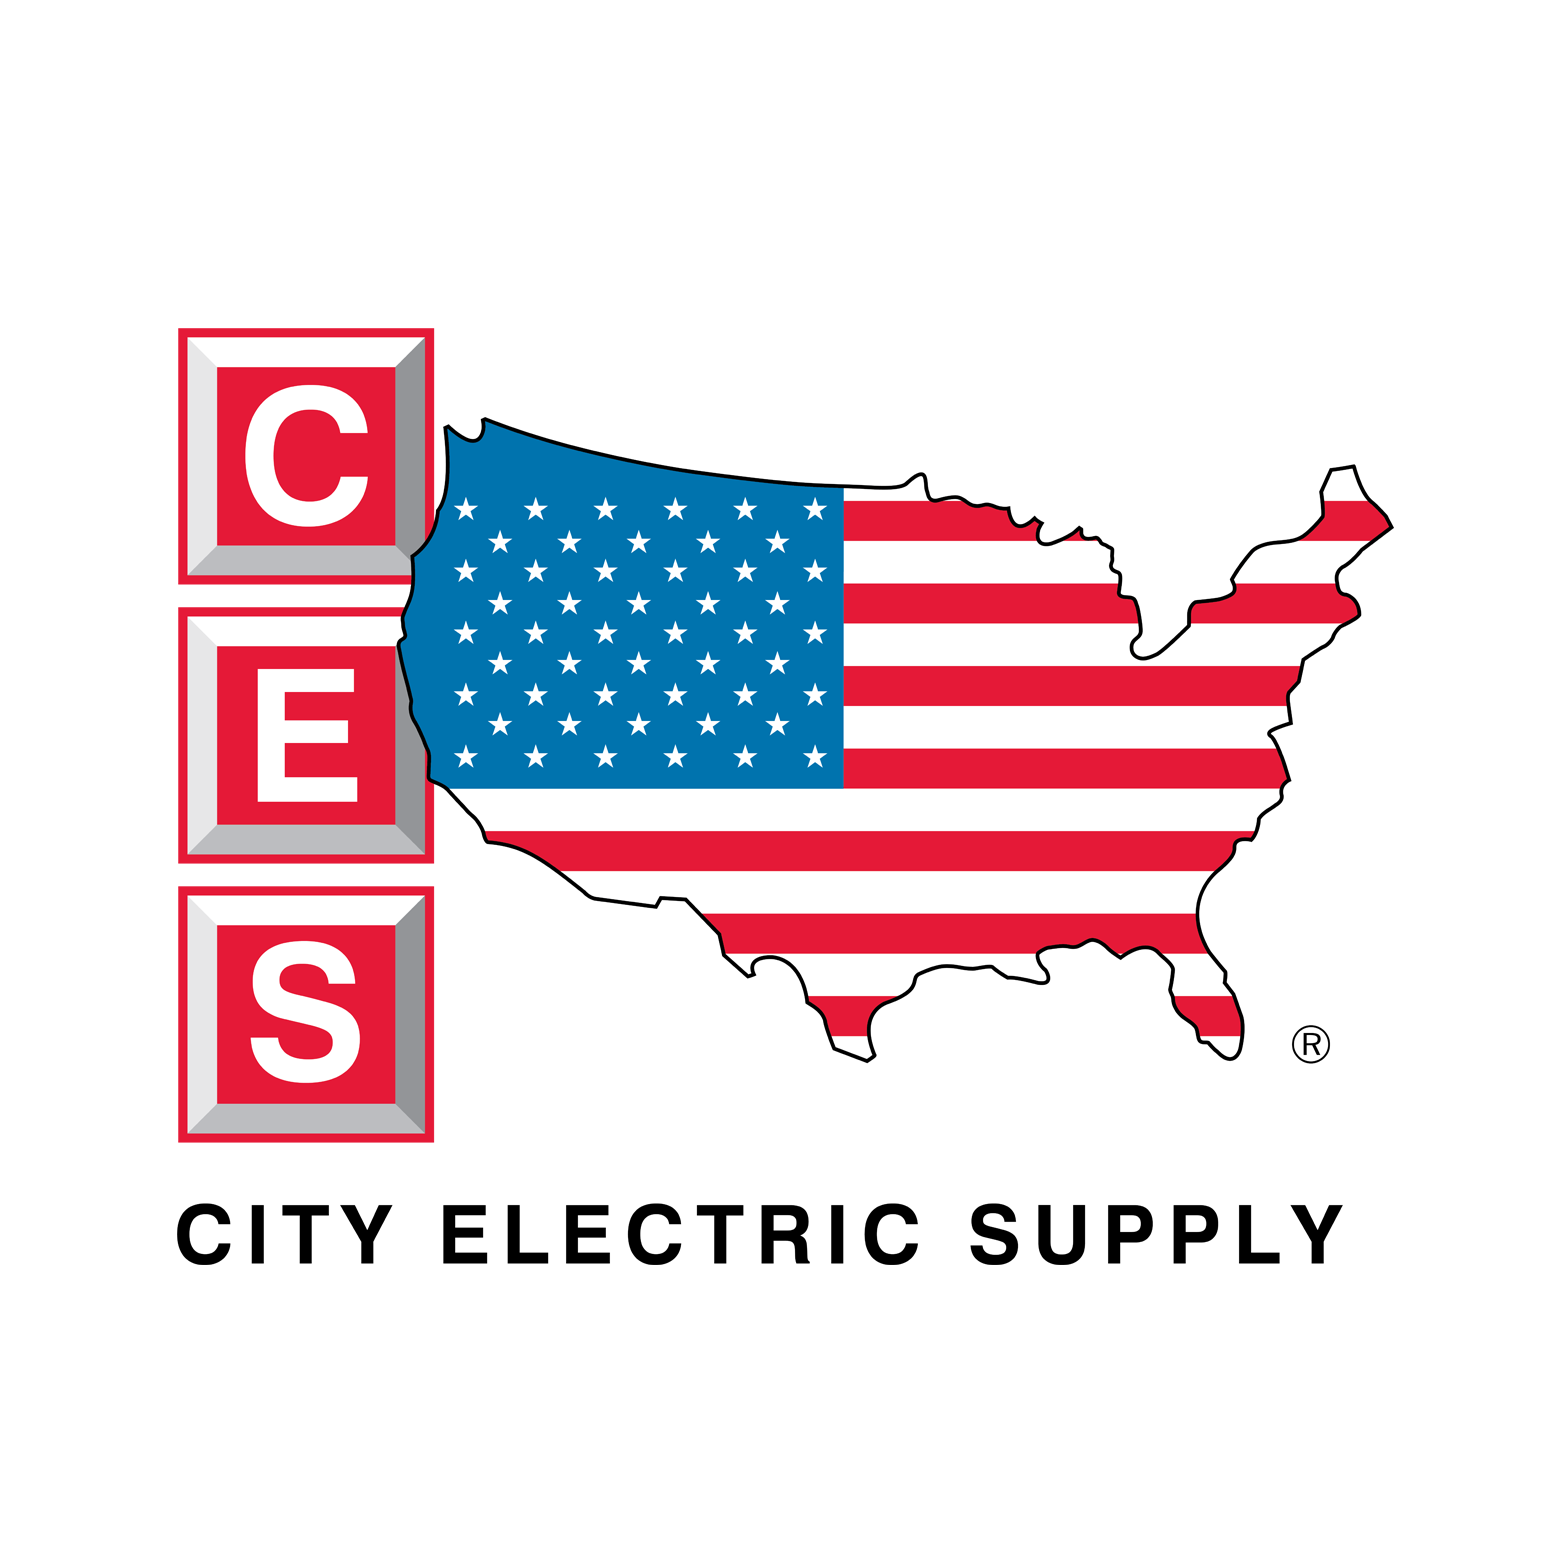 City Electric Supply Port St. Lucie